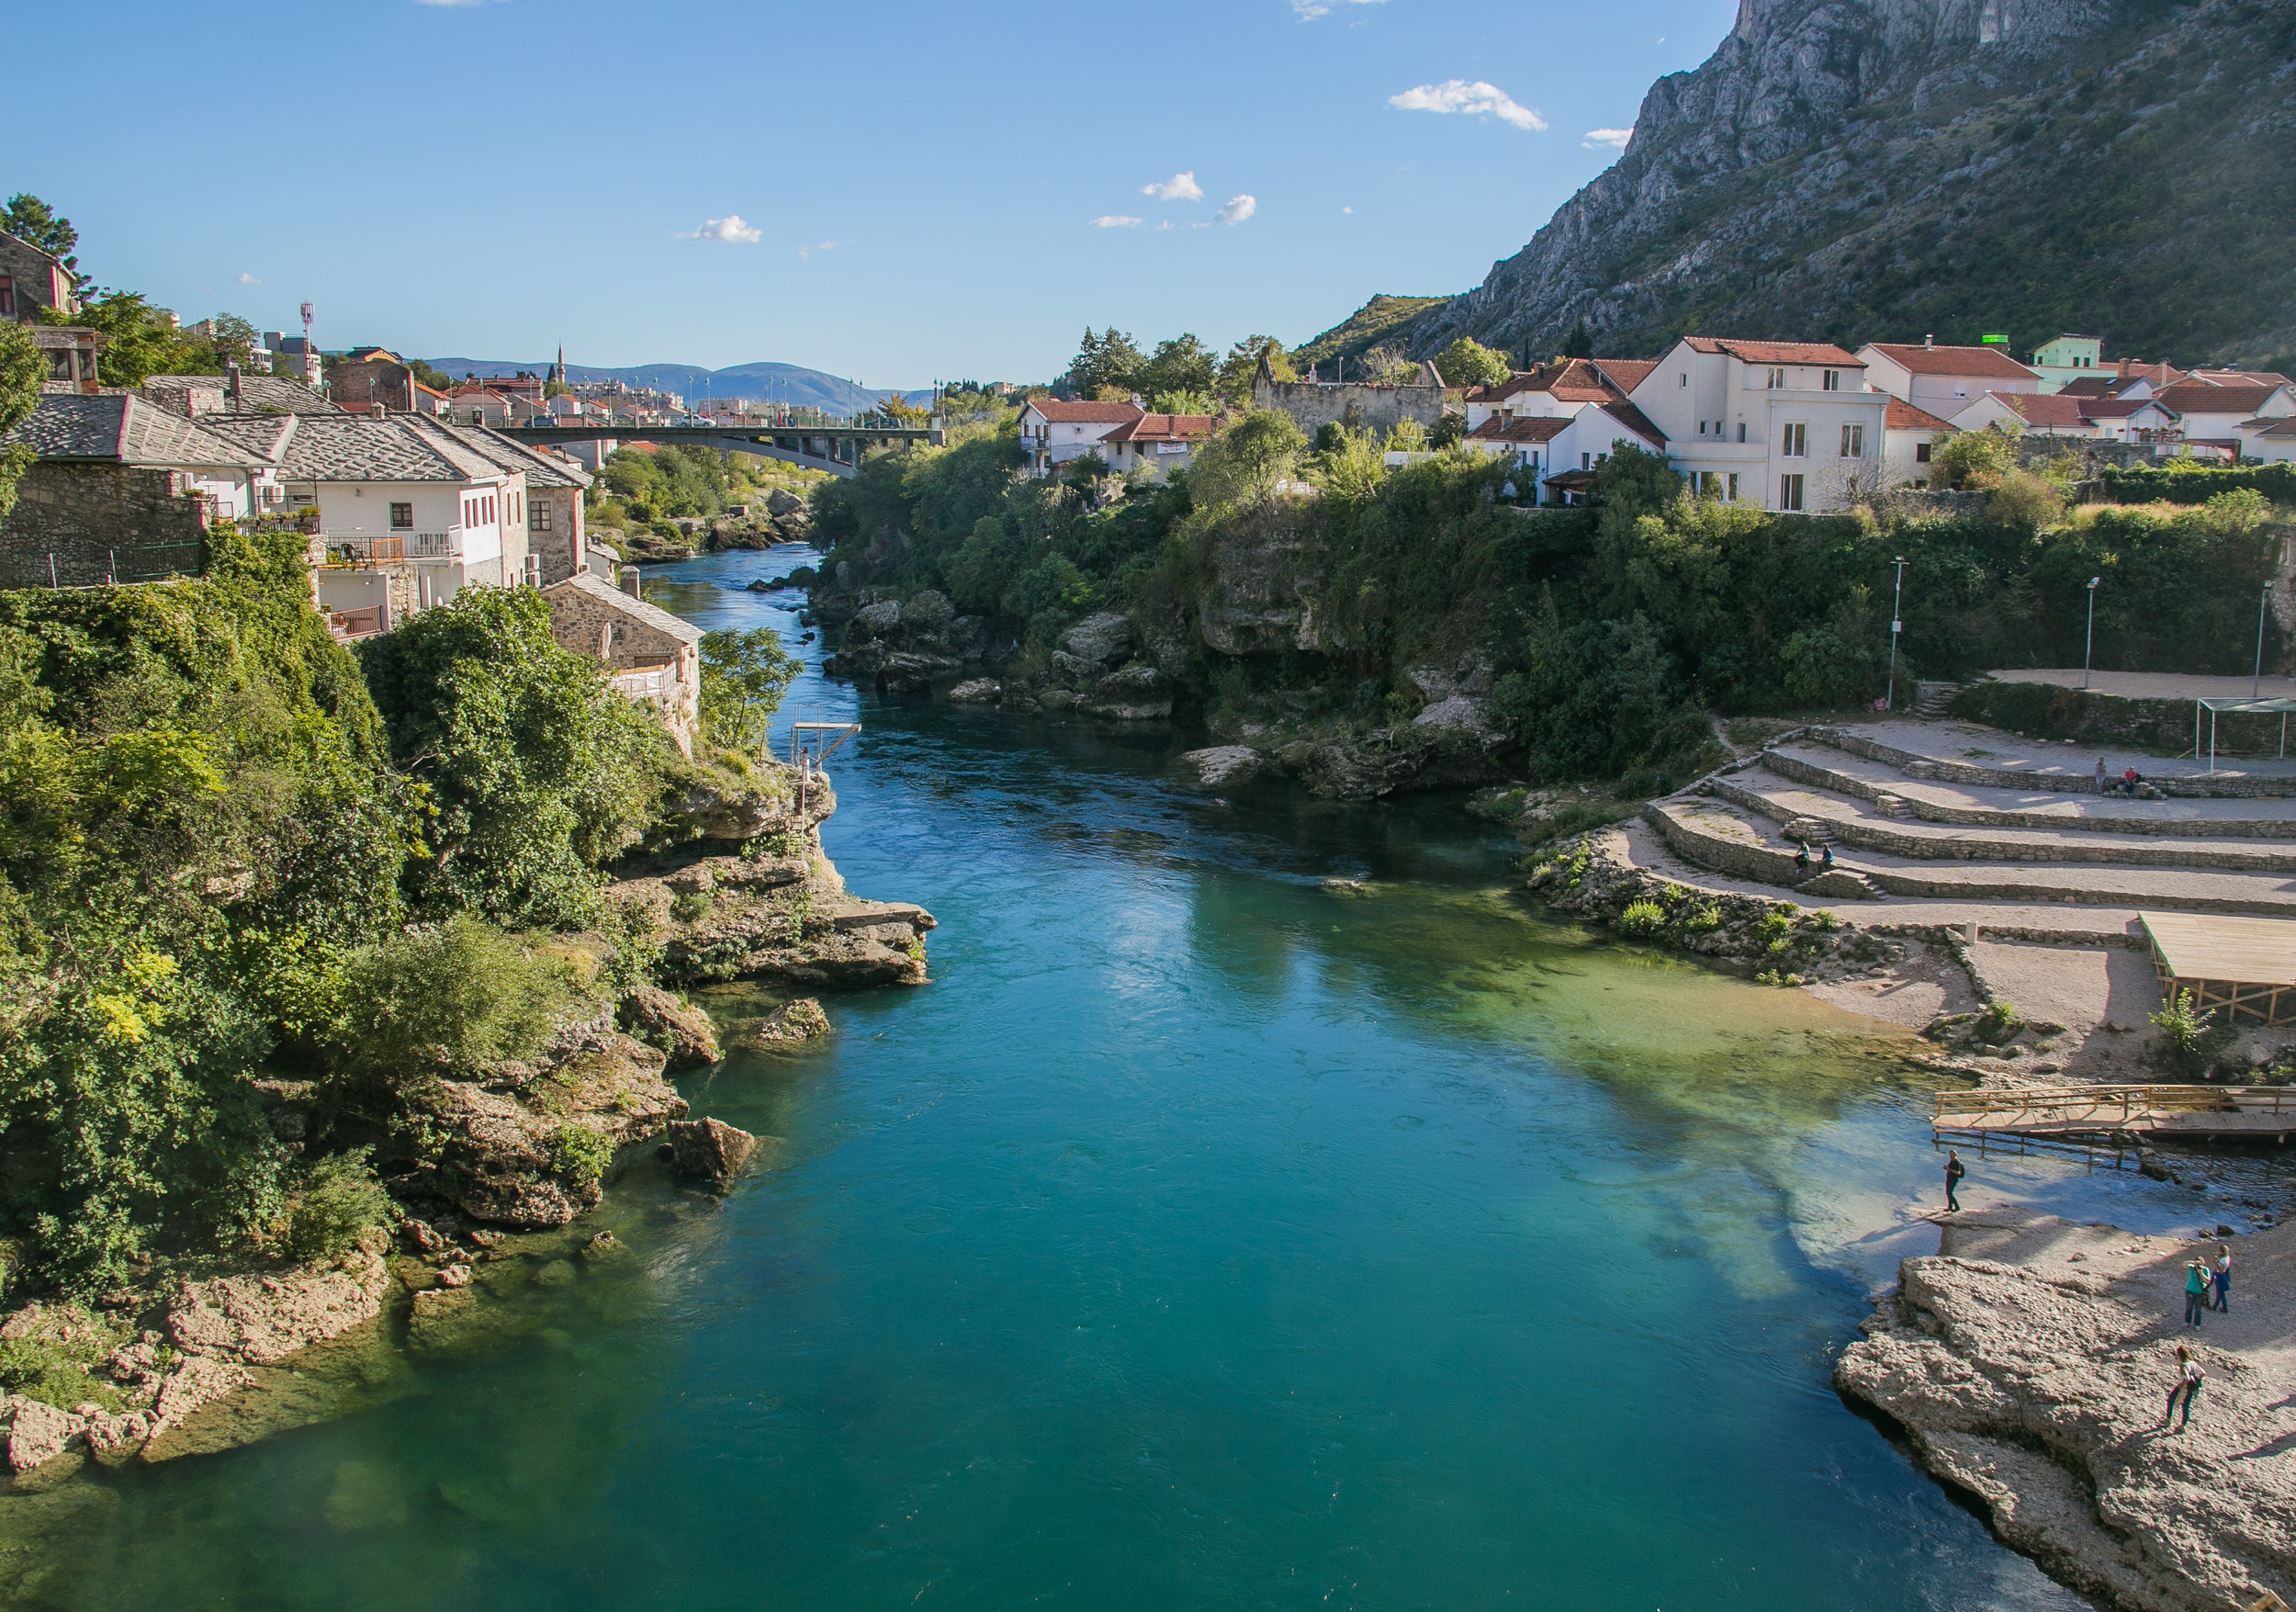 The Radoblja River weaves through the city of Mostar, Bosnia. The small diving board on the left riverbank is used as a practice grounds for the Bosnian diving team. For 30 euro you can complete a training course and jump off the over 70-foot historic Old Bridge where this photo was taken.